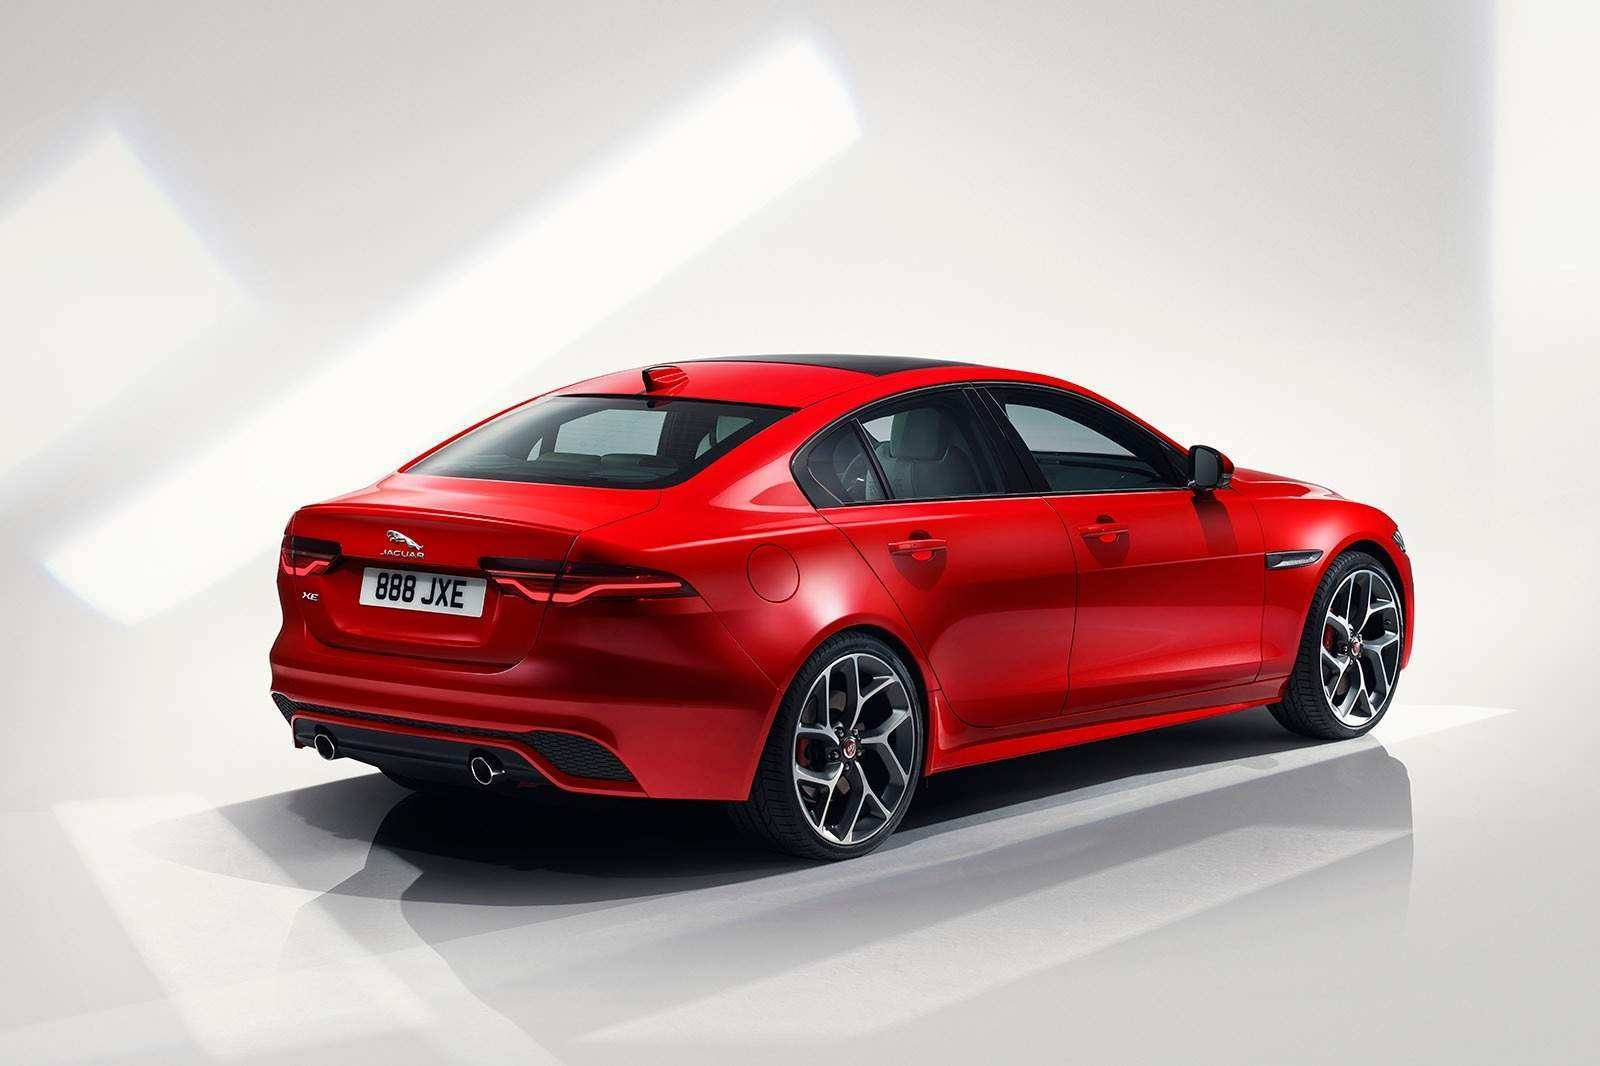 12 All New Jaguar Xe 2020 Release Date Exterior and Interior with Jaguar Xe 2020 Release Date